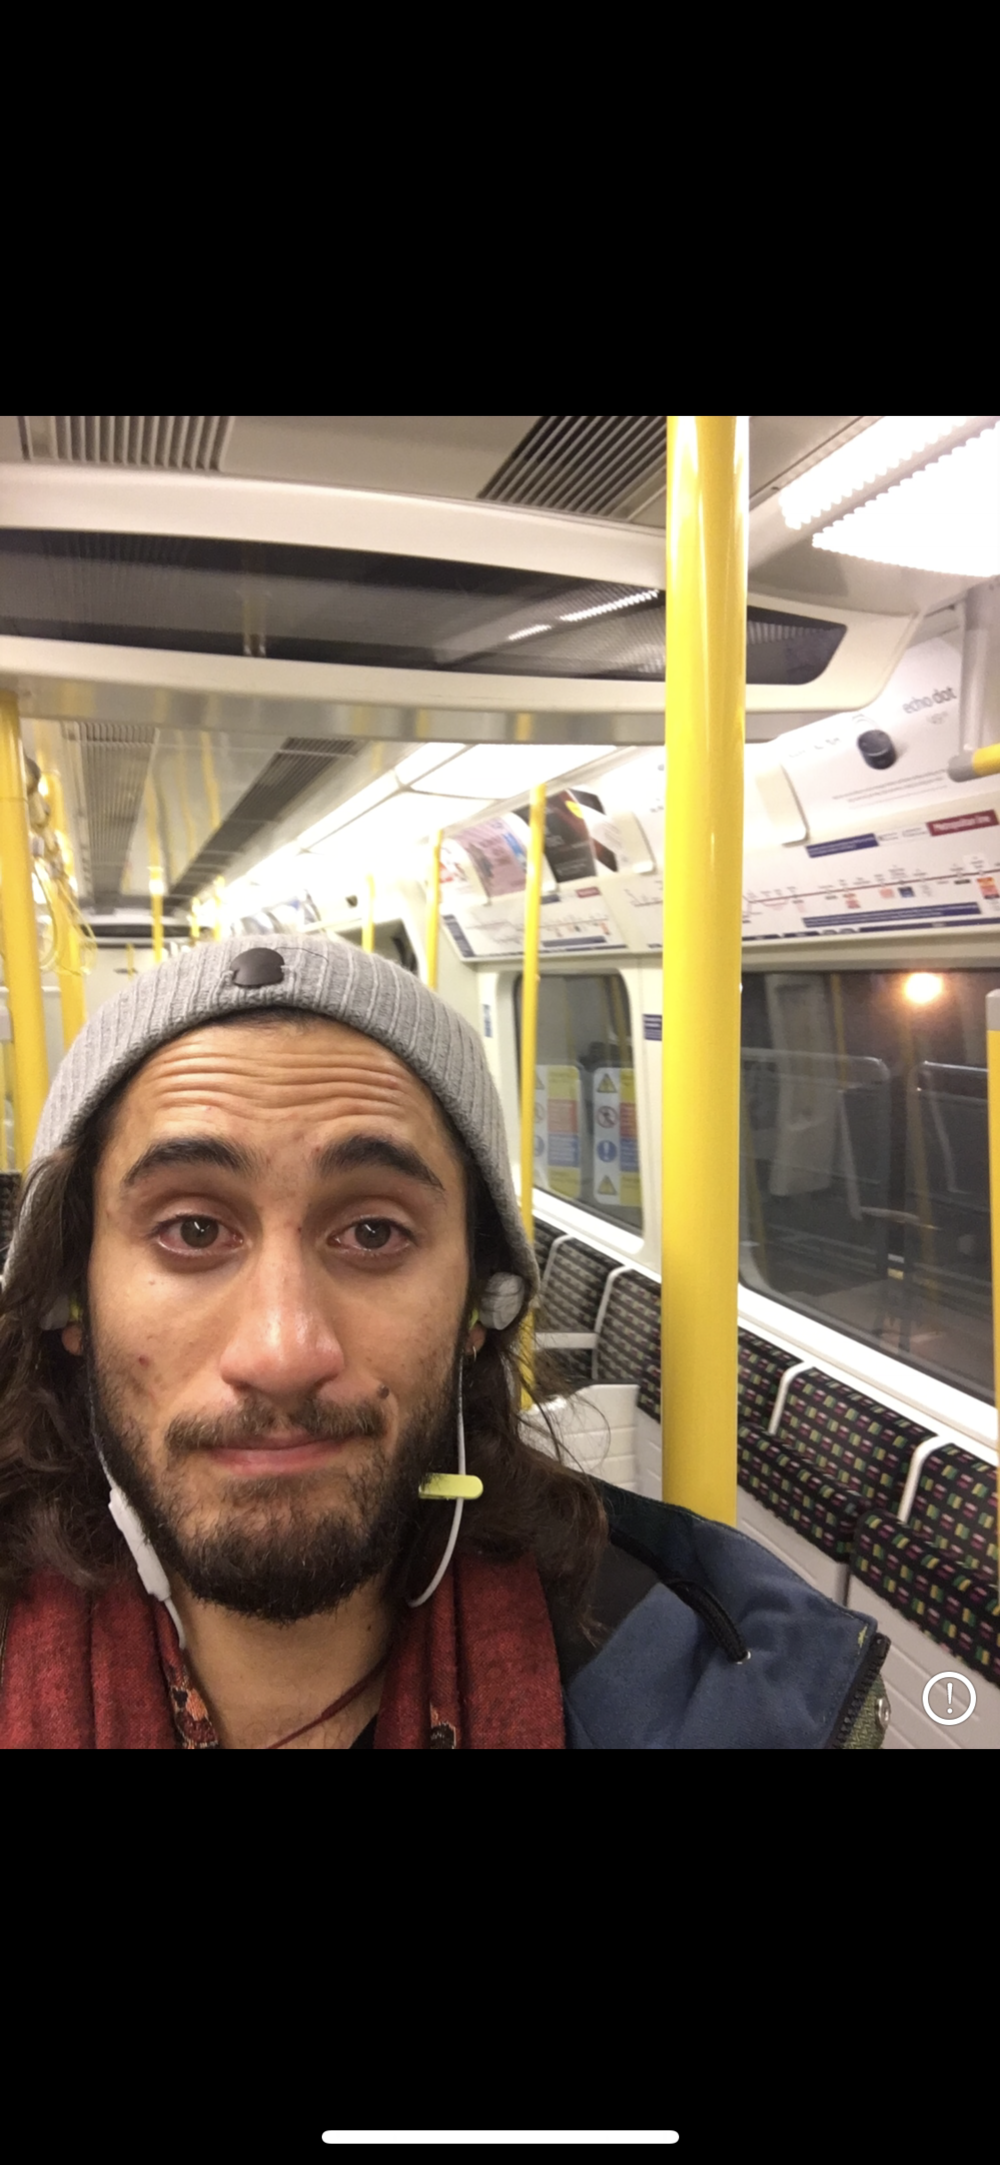 Tear filled Tube Rides. Sharing with love, We are never alone... 2017, November. London.